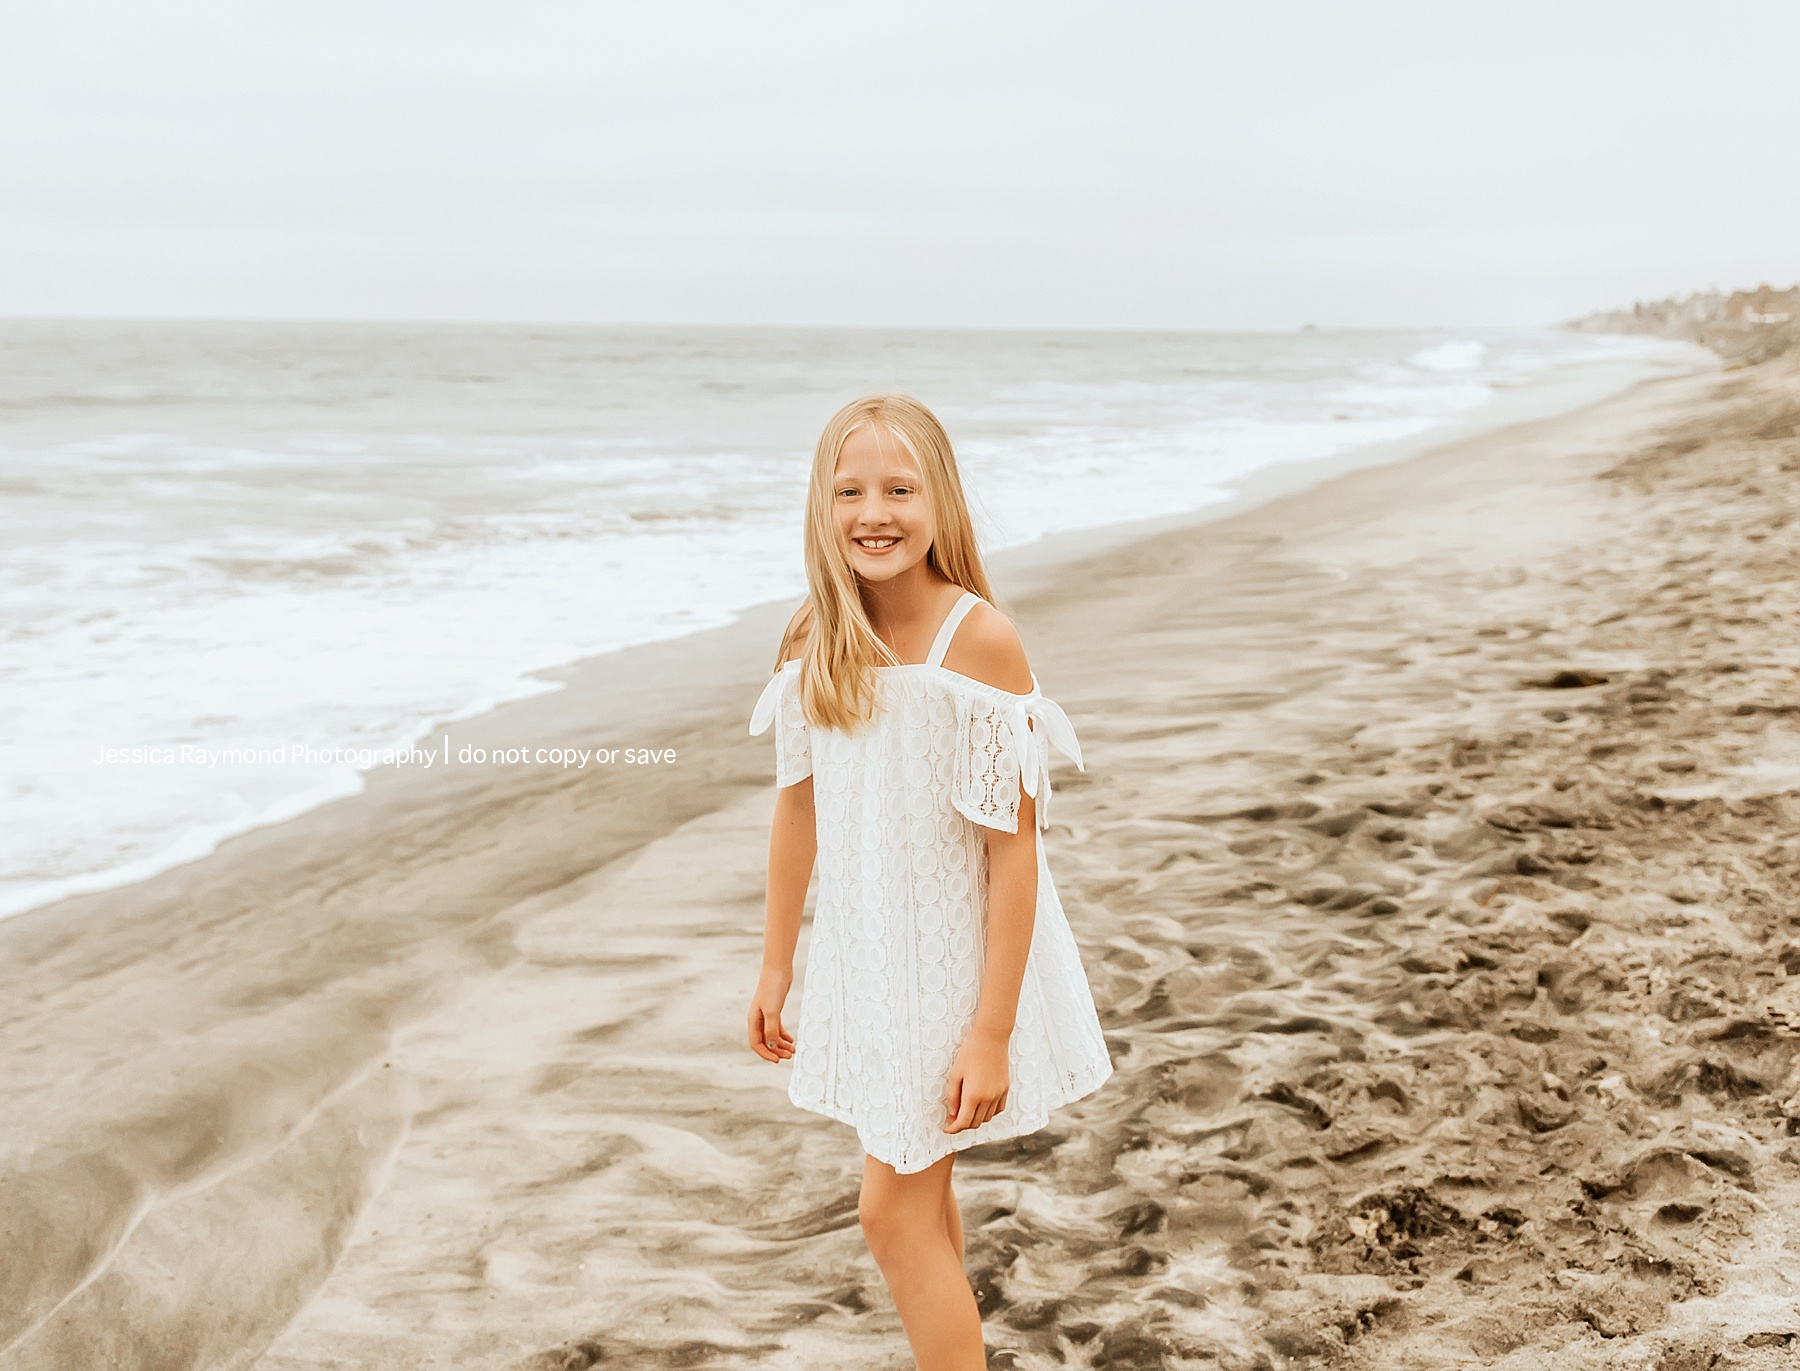 carlsbad beach pictures girl playing on beach